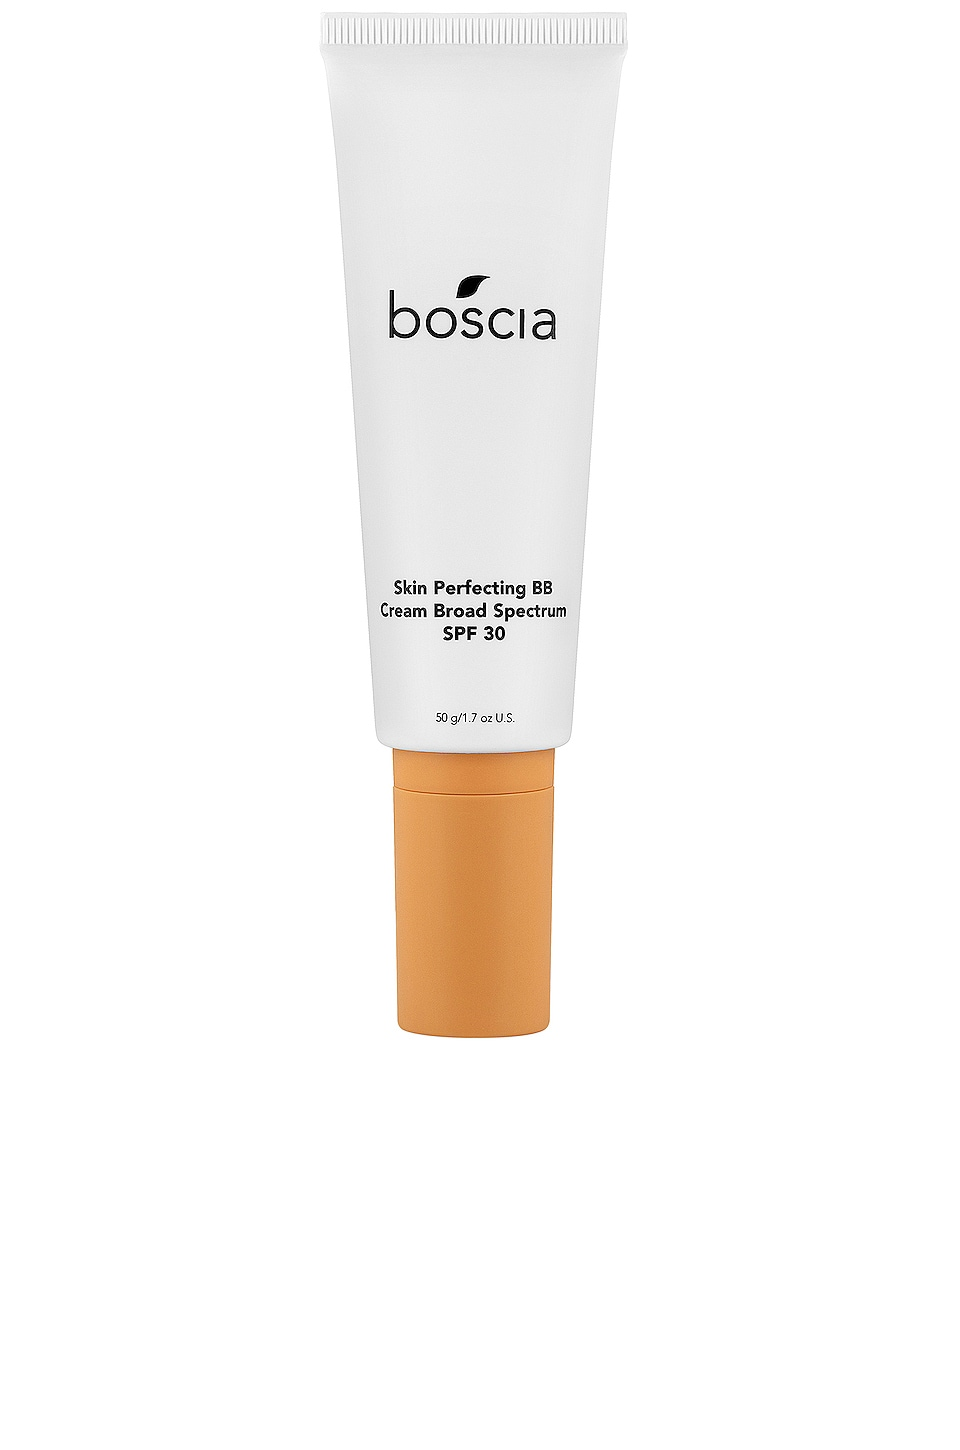 Boscia Skin Perfecting Bb Cream Broad Spectrum Spf 30 Manhattan Beach 1.7 oz/ 50 ml